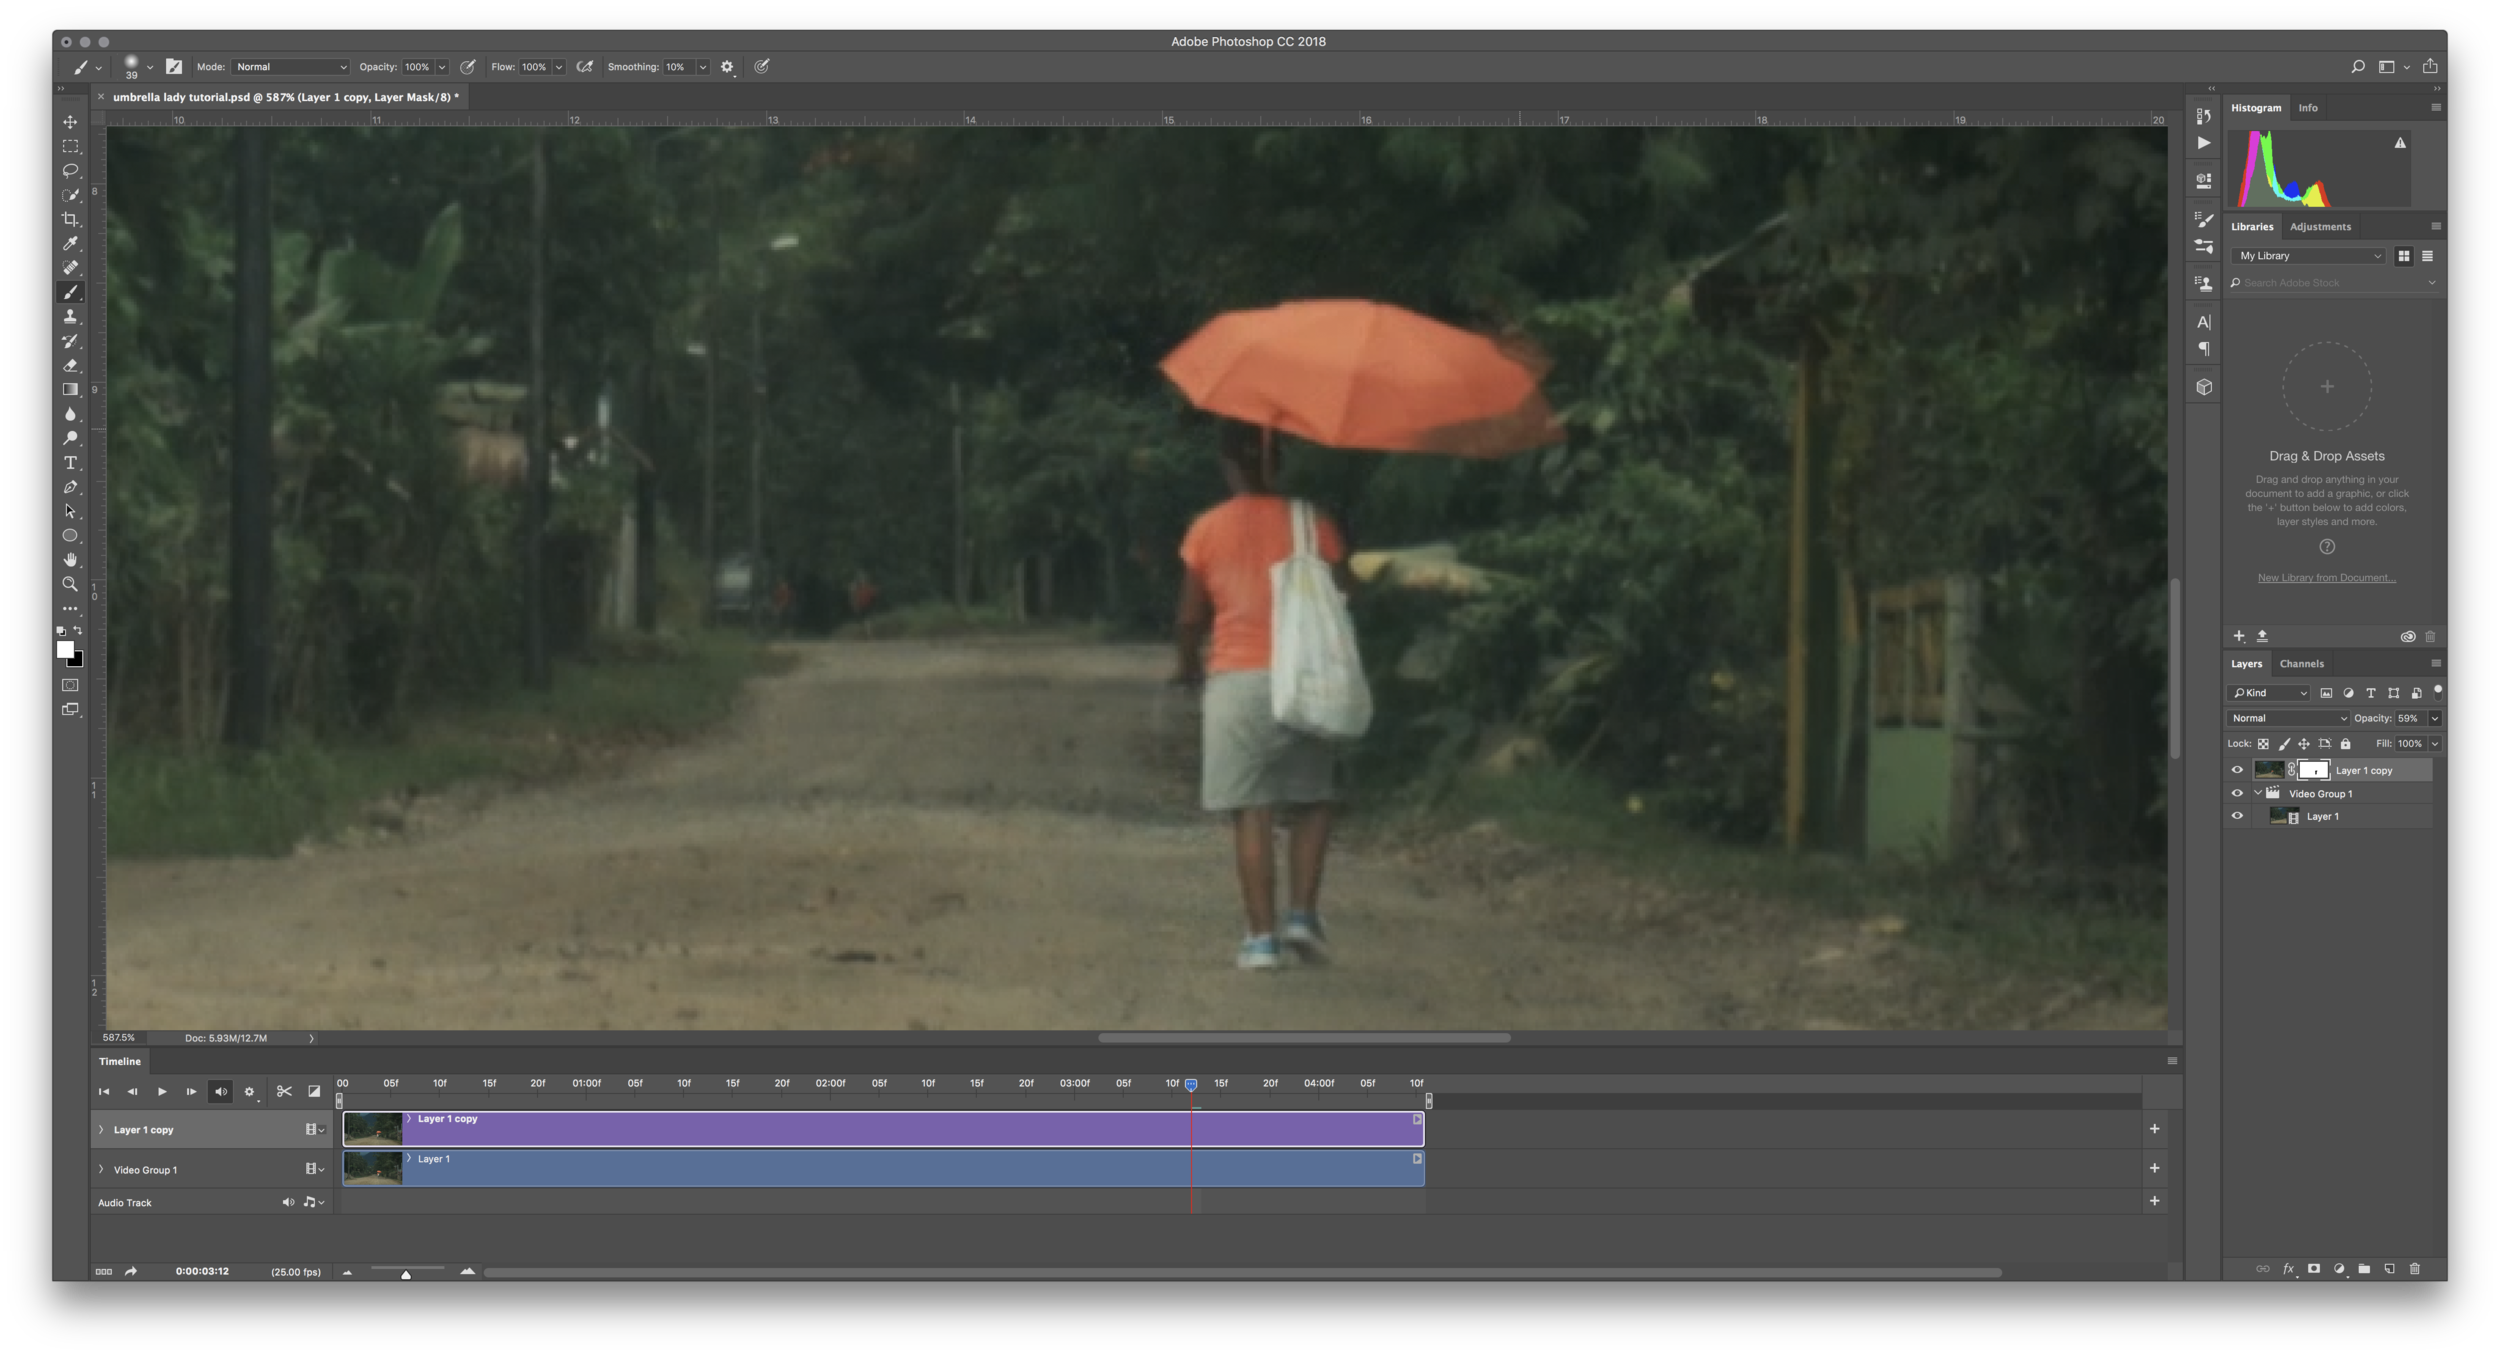 cinemagraph-gif-tutorial-from-video-photoshop-premiere-6.jpg